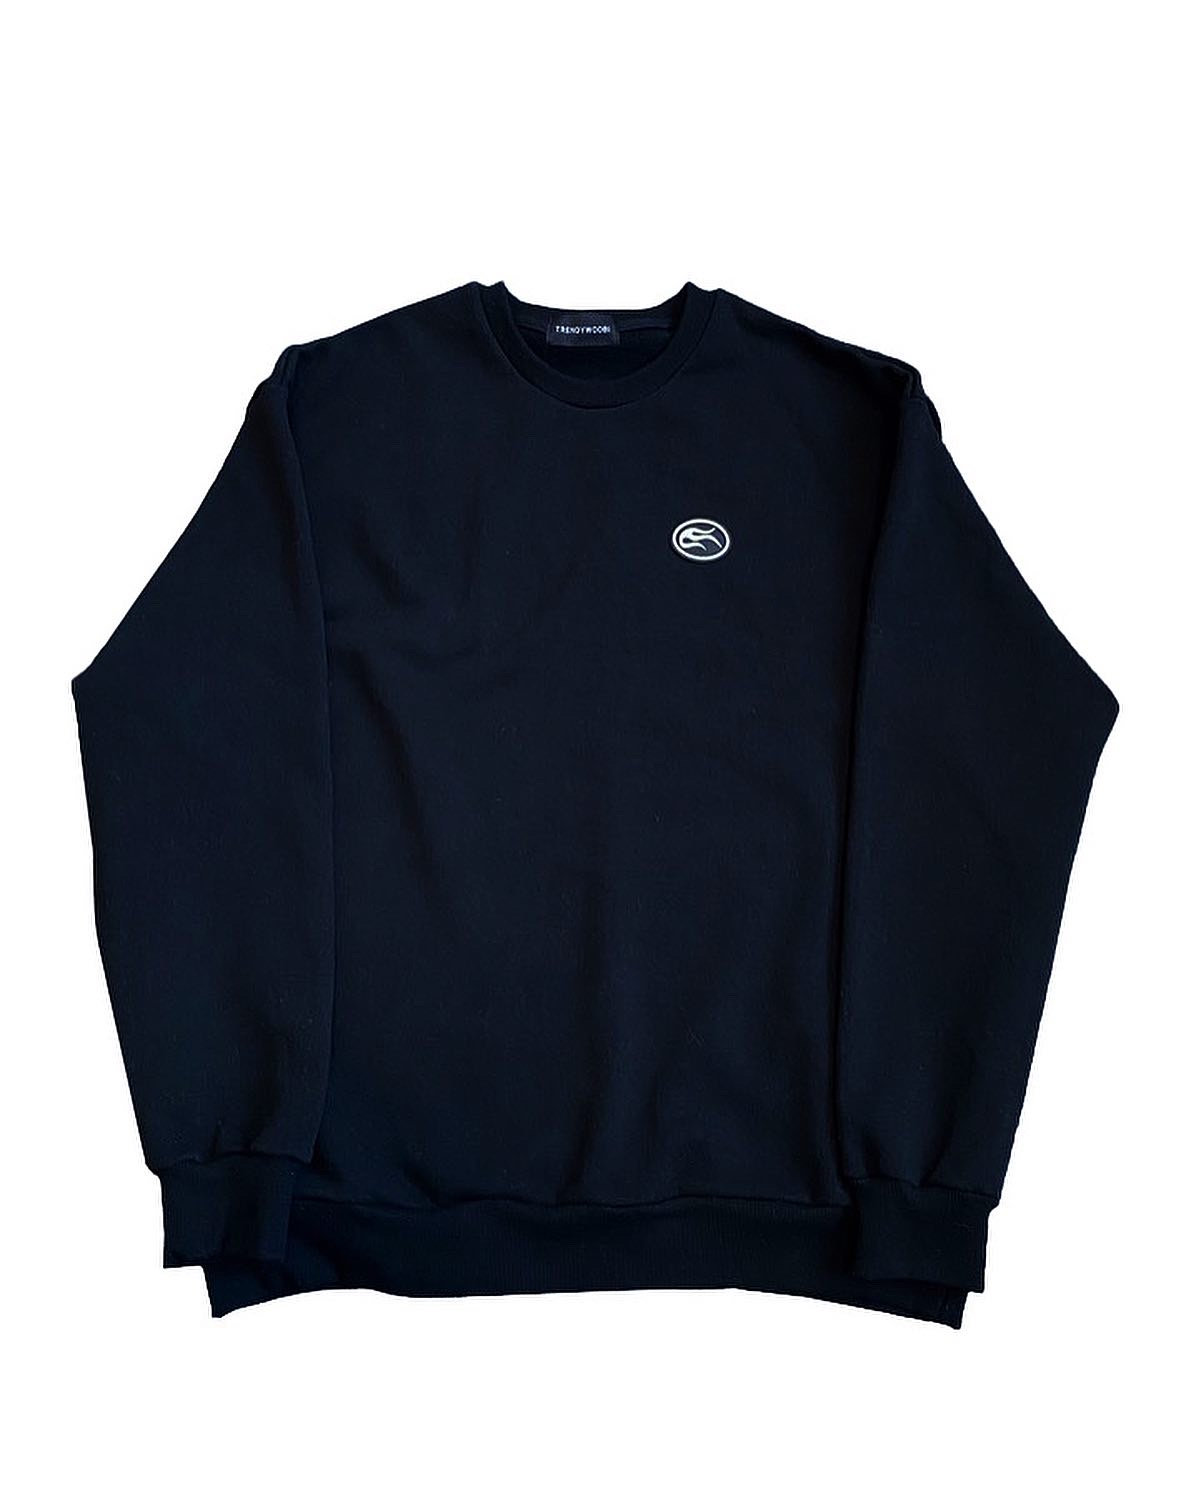 Sweat shirt black